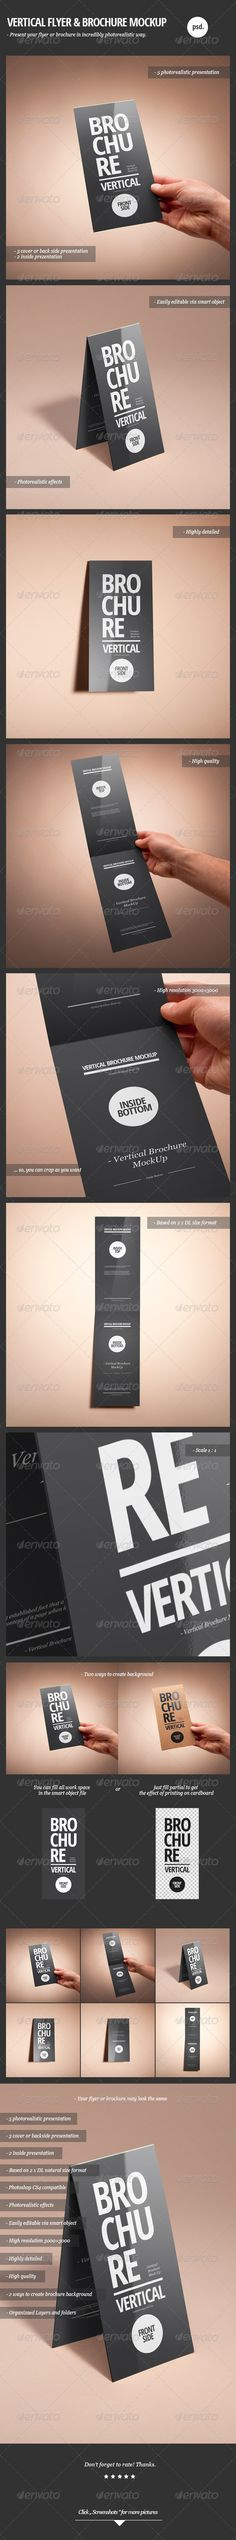 Vertical Flyer & Brochure Mock-Up. Present your flyer or brochure in incredibly photorealistic way.Features* 5 photorealistic presentation* 3 cover or back side presentation* 2 inside presentation* Based on 2 x DL natural size format* Photorealisti… Brochure Mockup, Business Brochure, Mockup Photoshop, Leaflet Design, Flyer Layout, Print Templates, Design Templates, Graphic Design Print, Presentation Templates